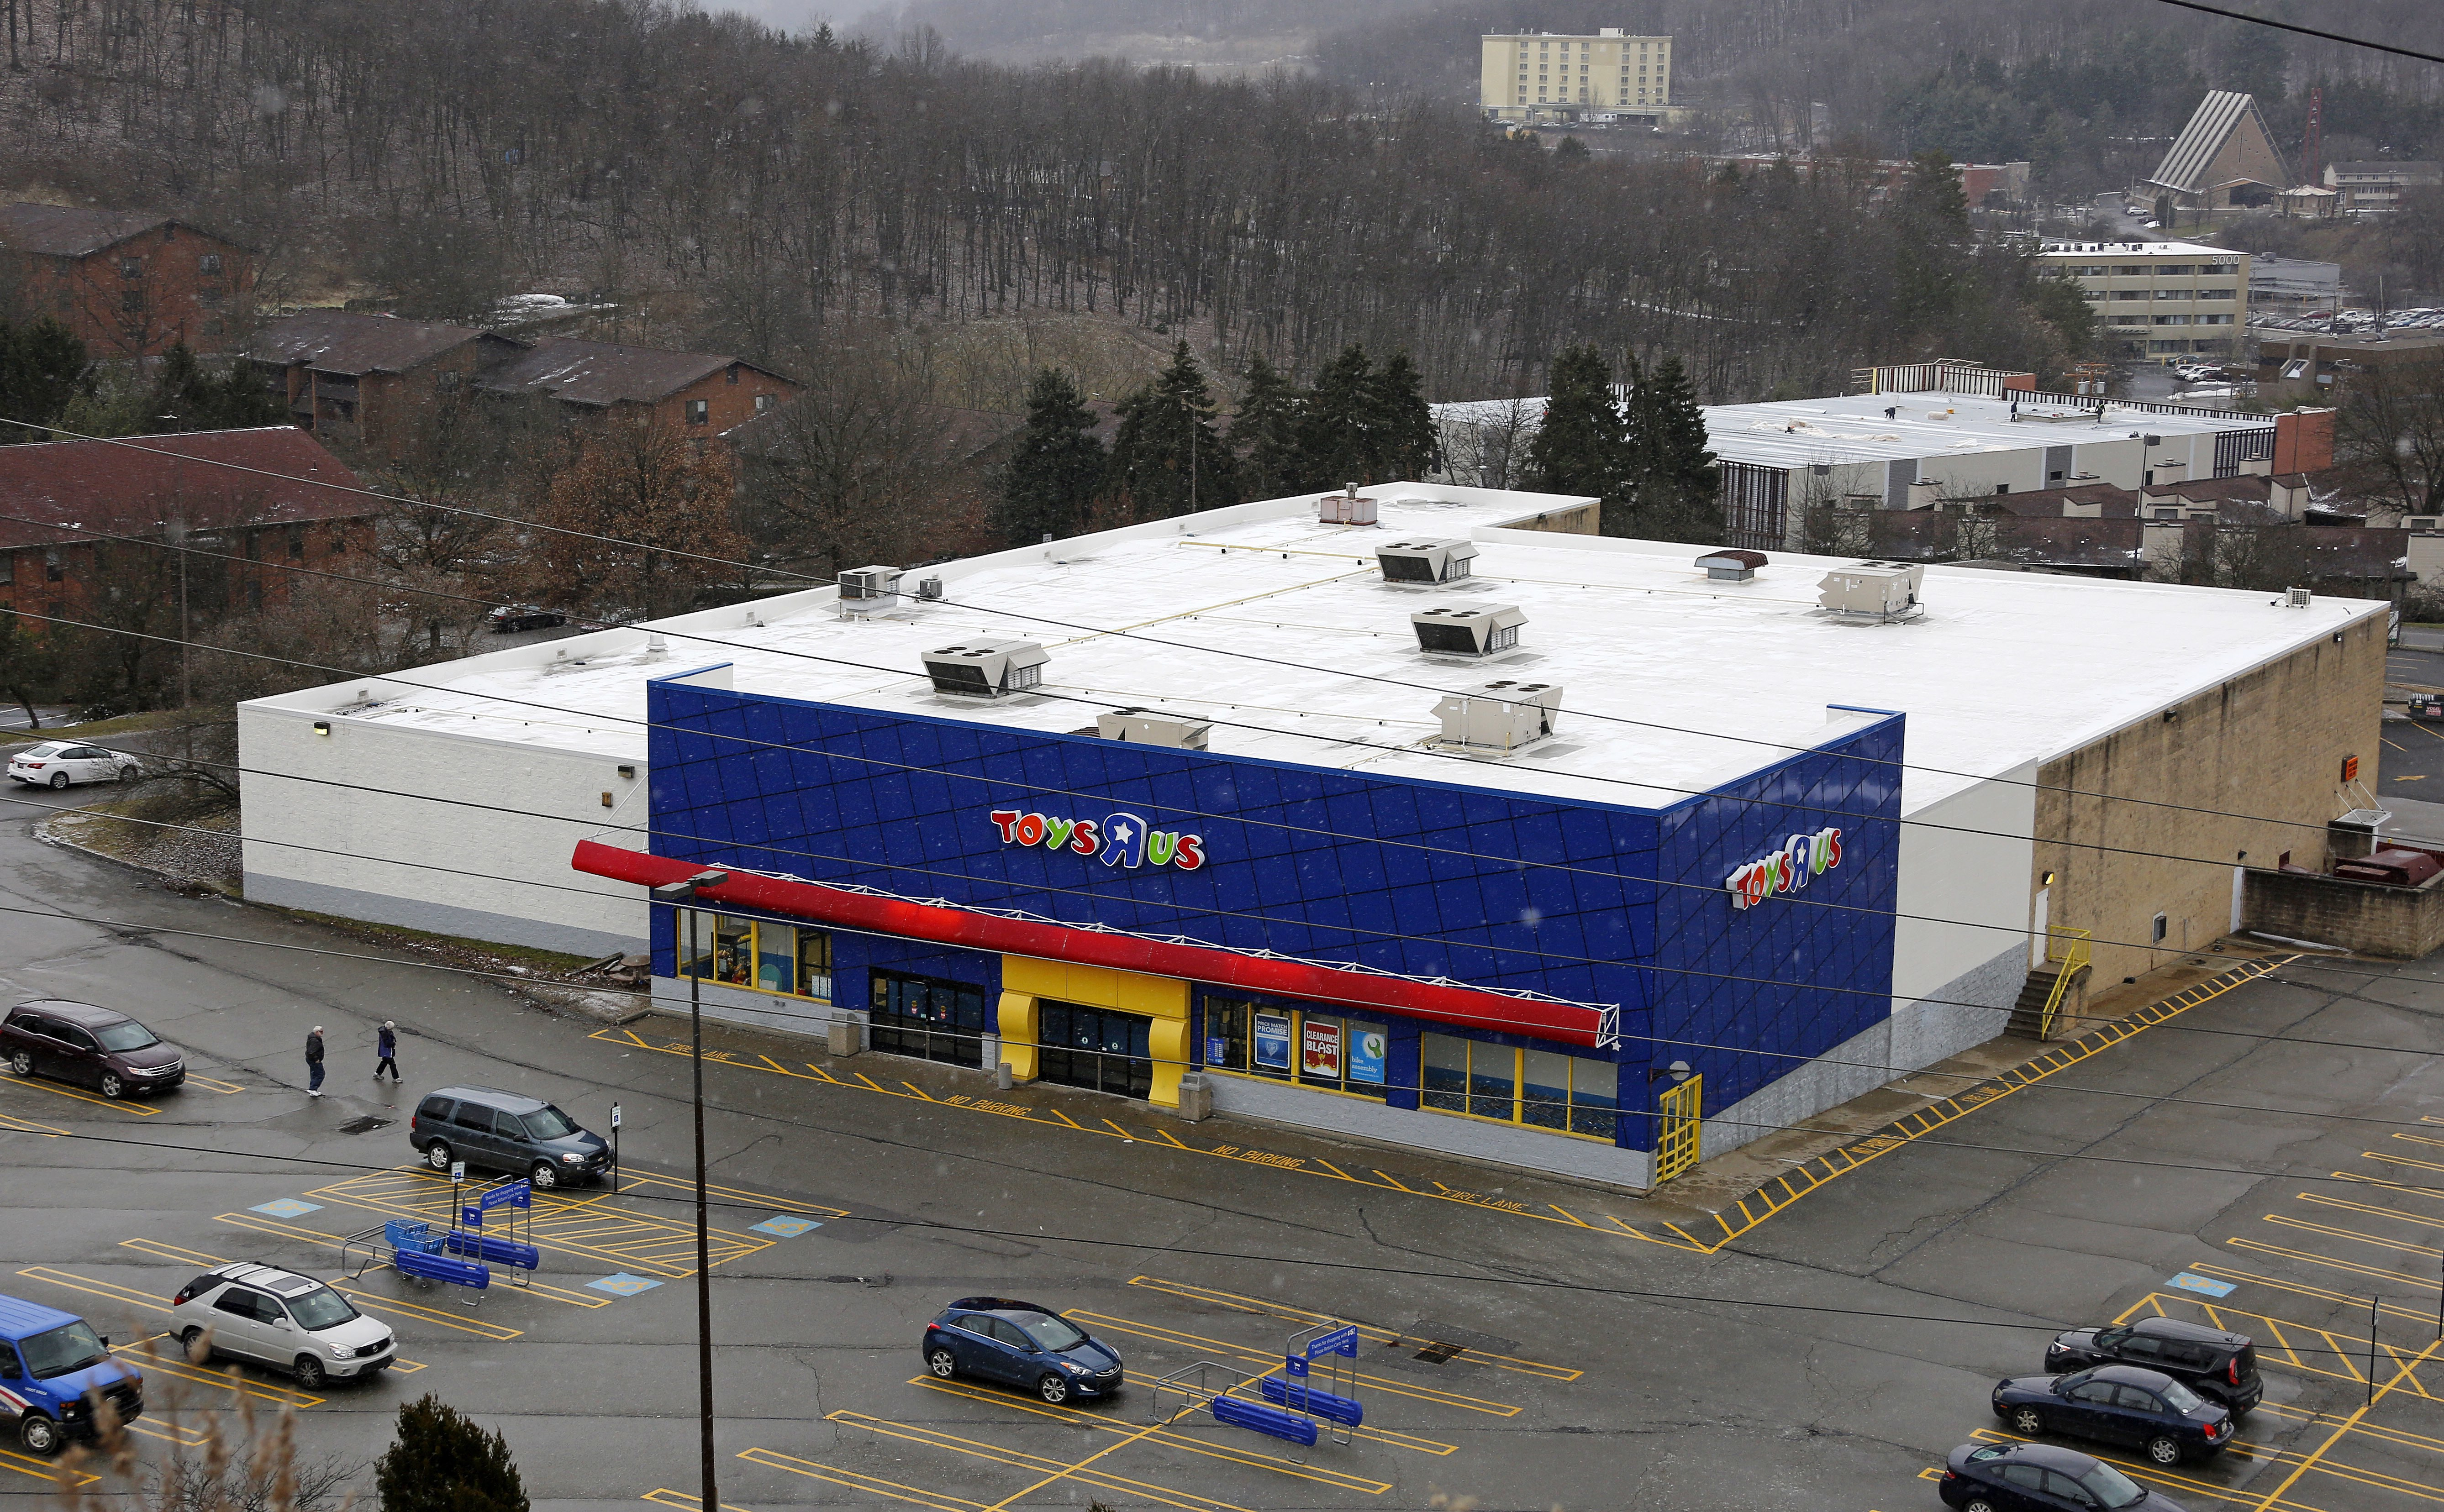 New Jersey-based Toys R' Us to close 182 stores